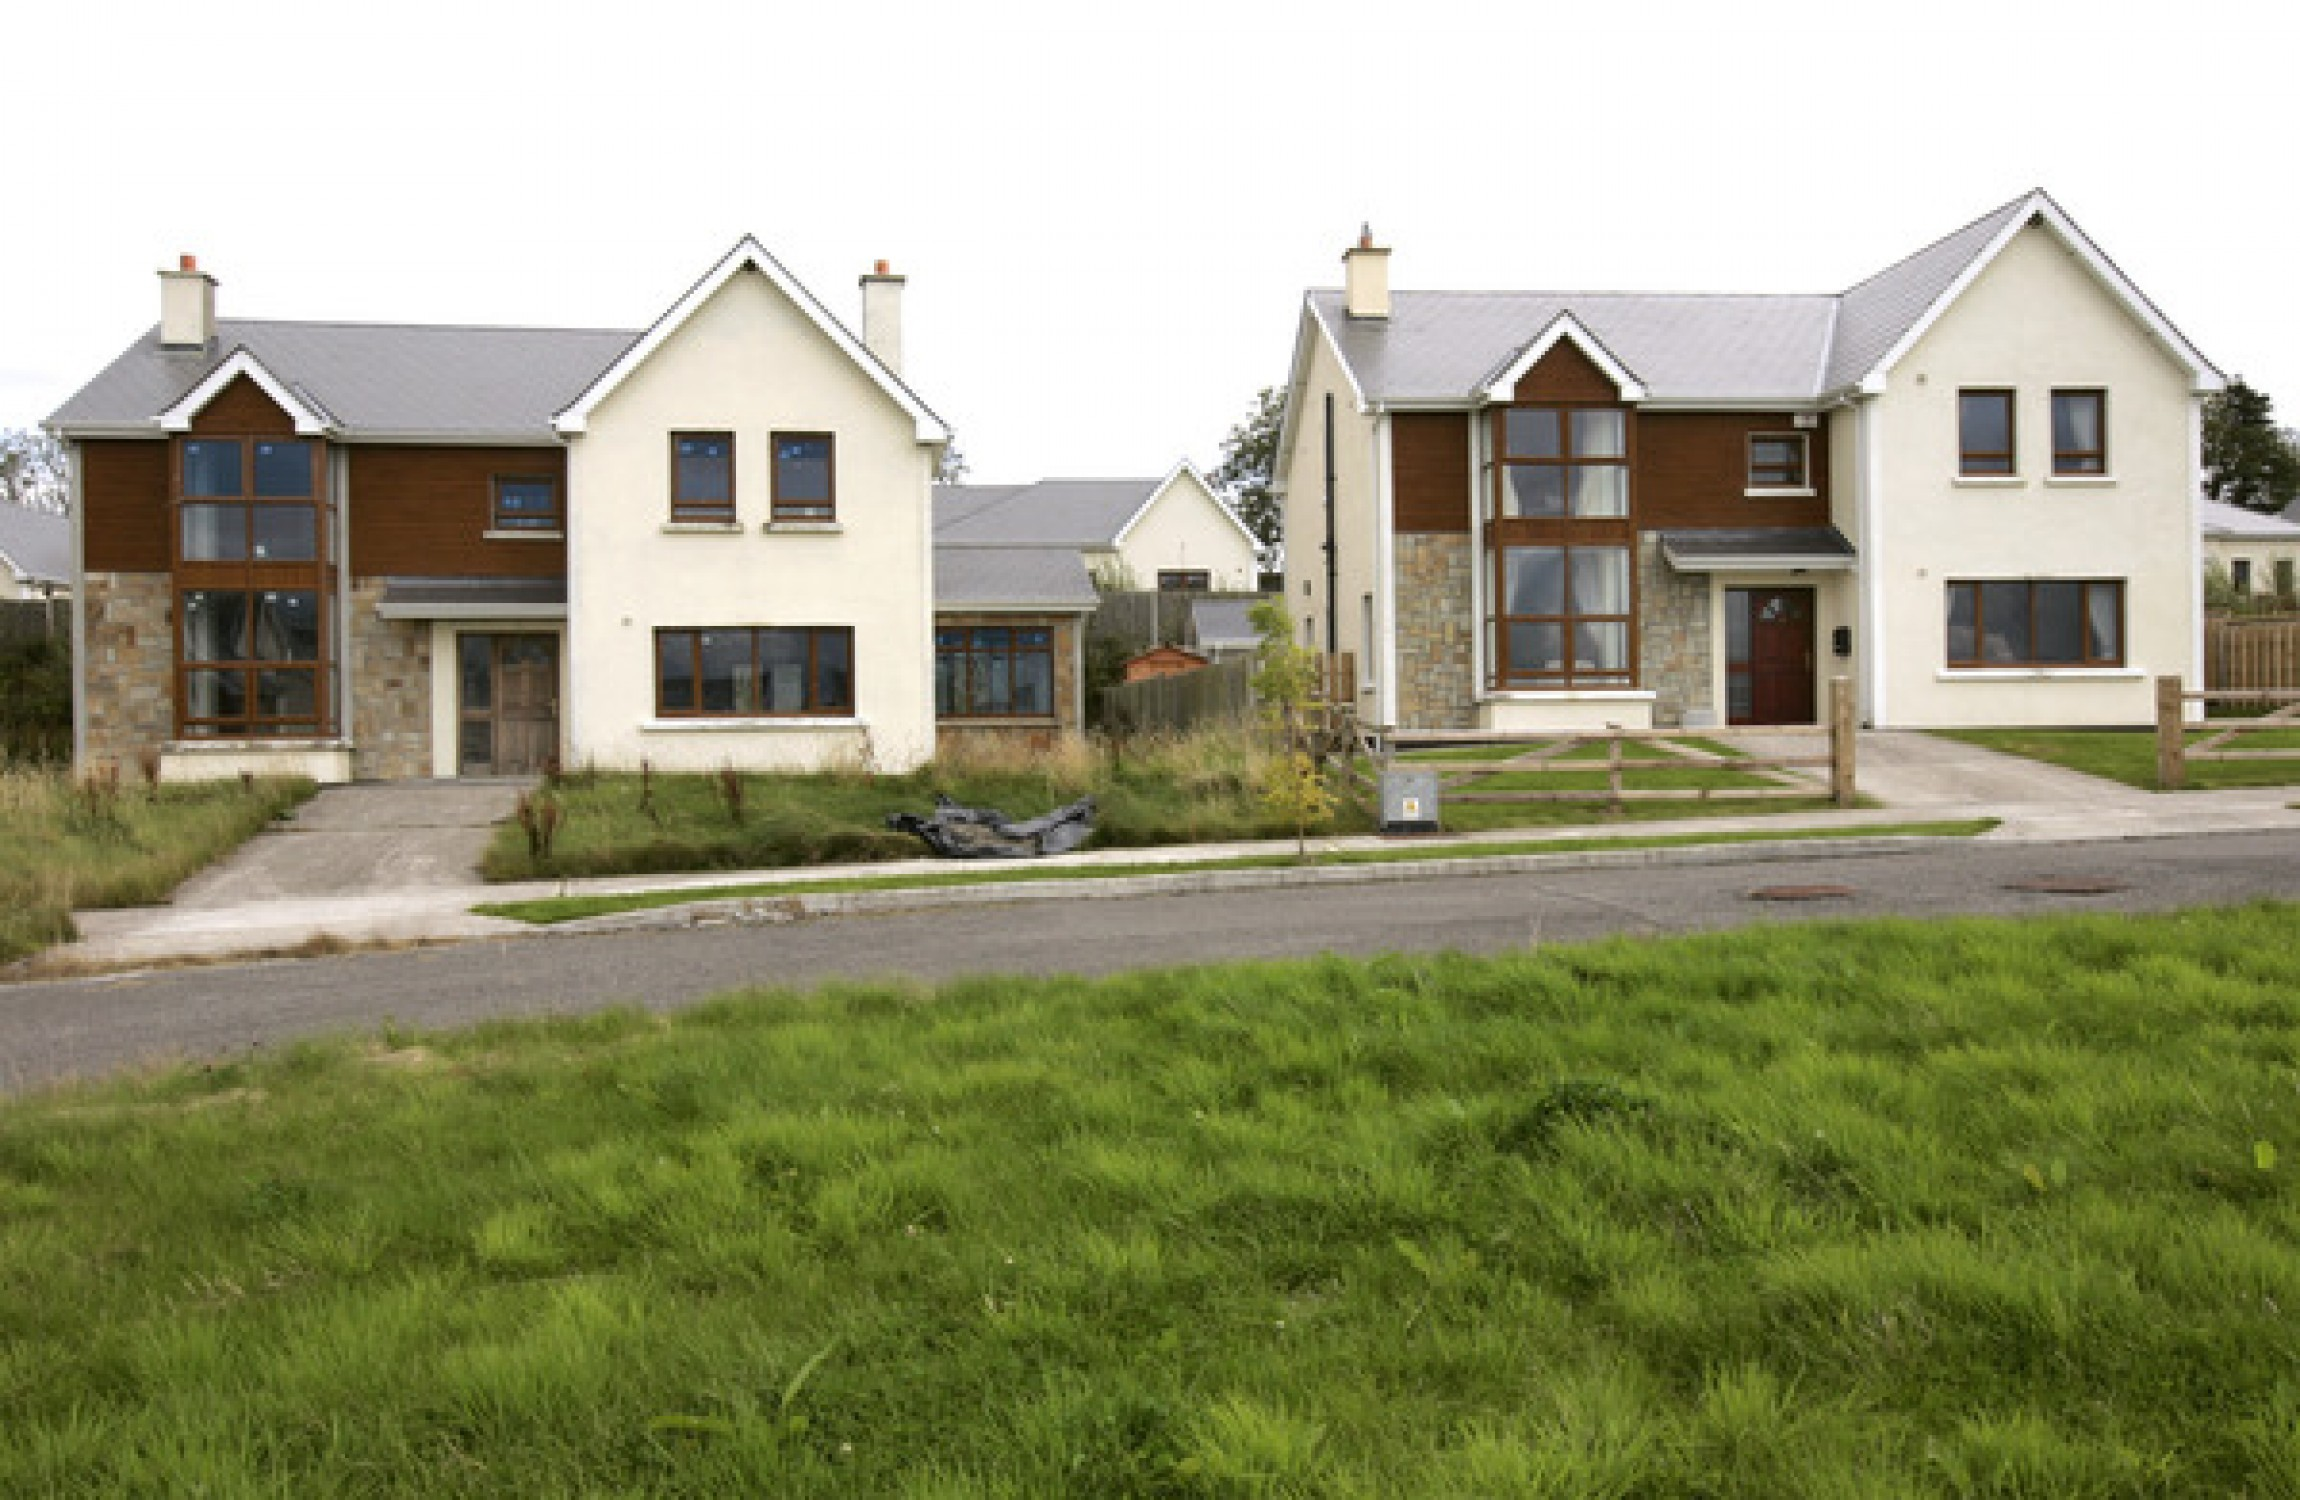 198 000 empty homes in ireland uk officers turn them